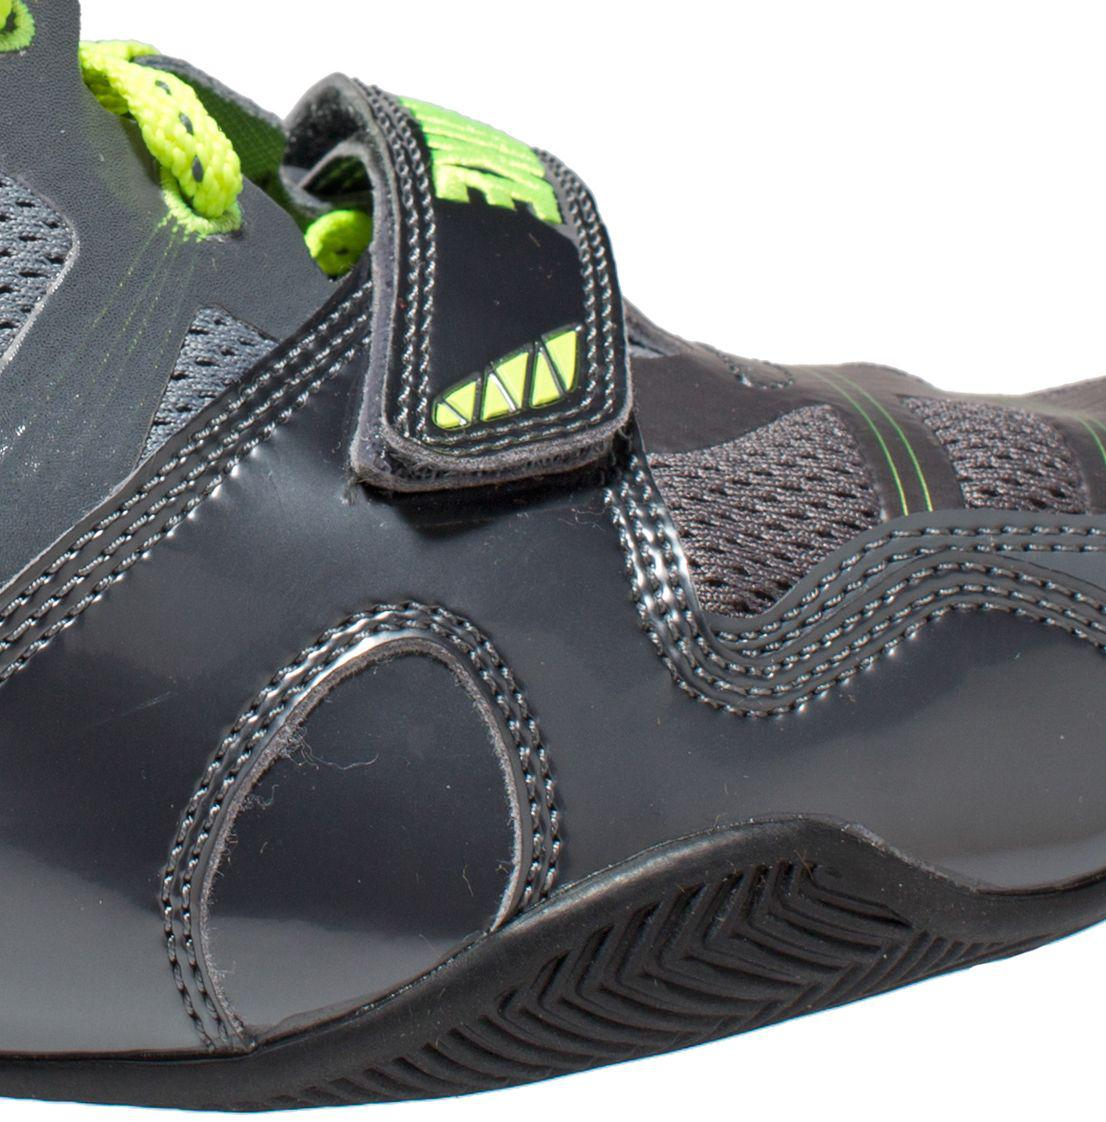 571009fac02a Lyst - Nike Hyperko Mp Boxing Shoes in Gray for Men